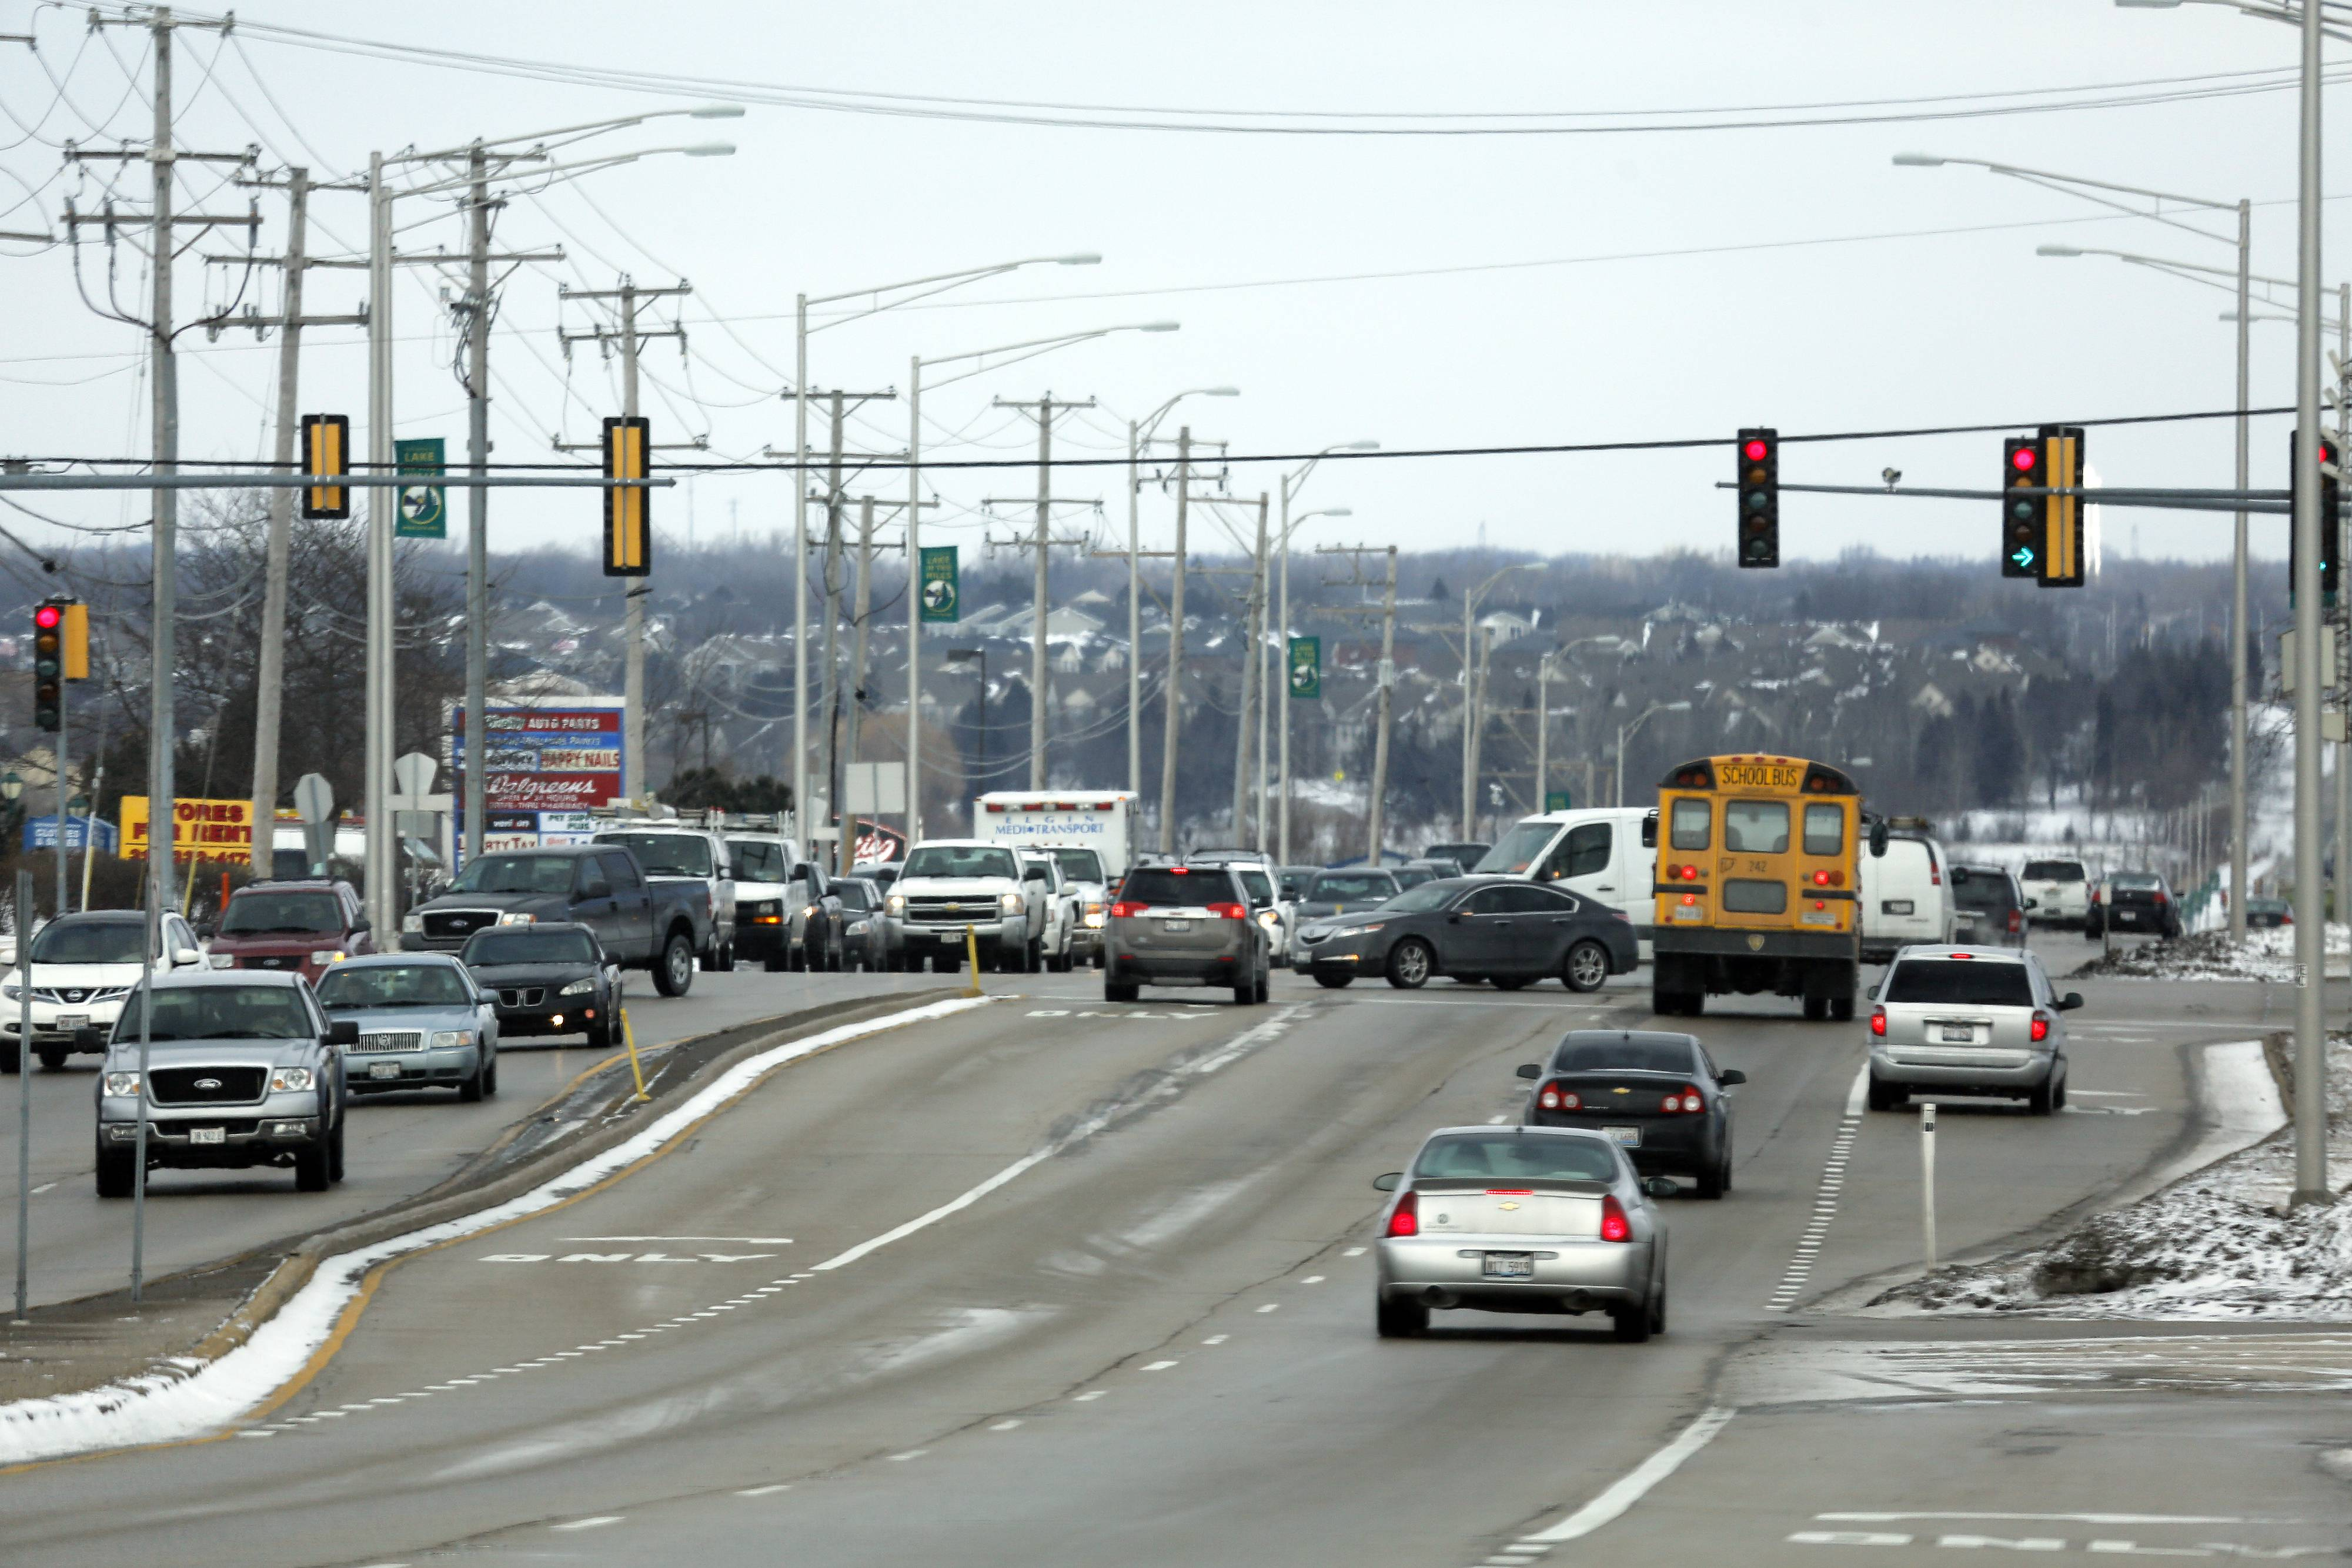 The intersection of Randall and Algonquin roads would get a continuous flow intersection as part of McHenry County's plan to widen Randall Road.